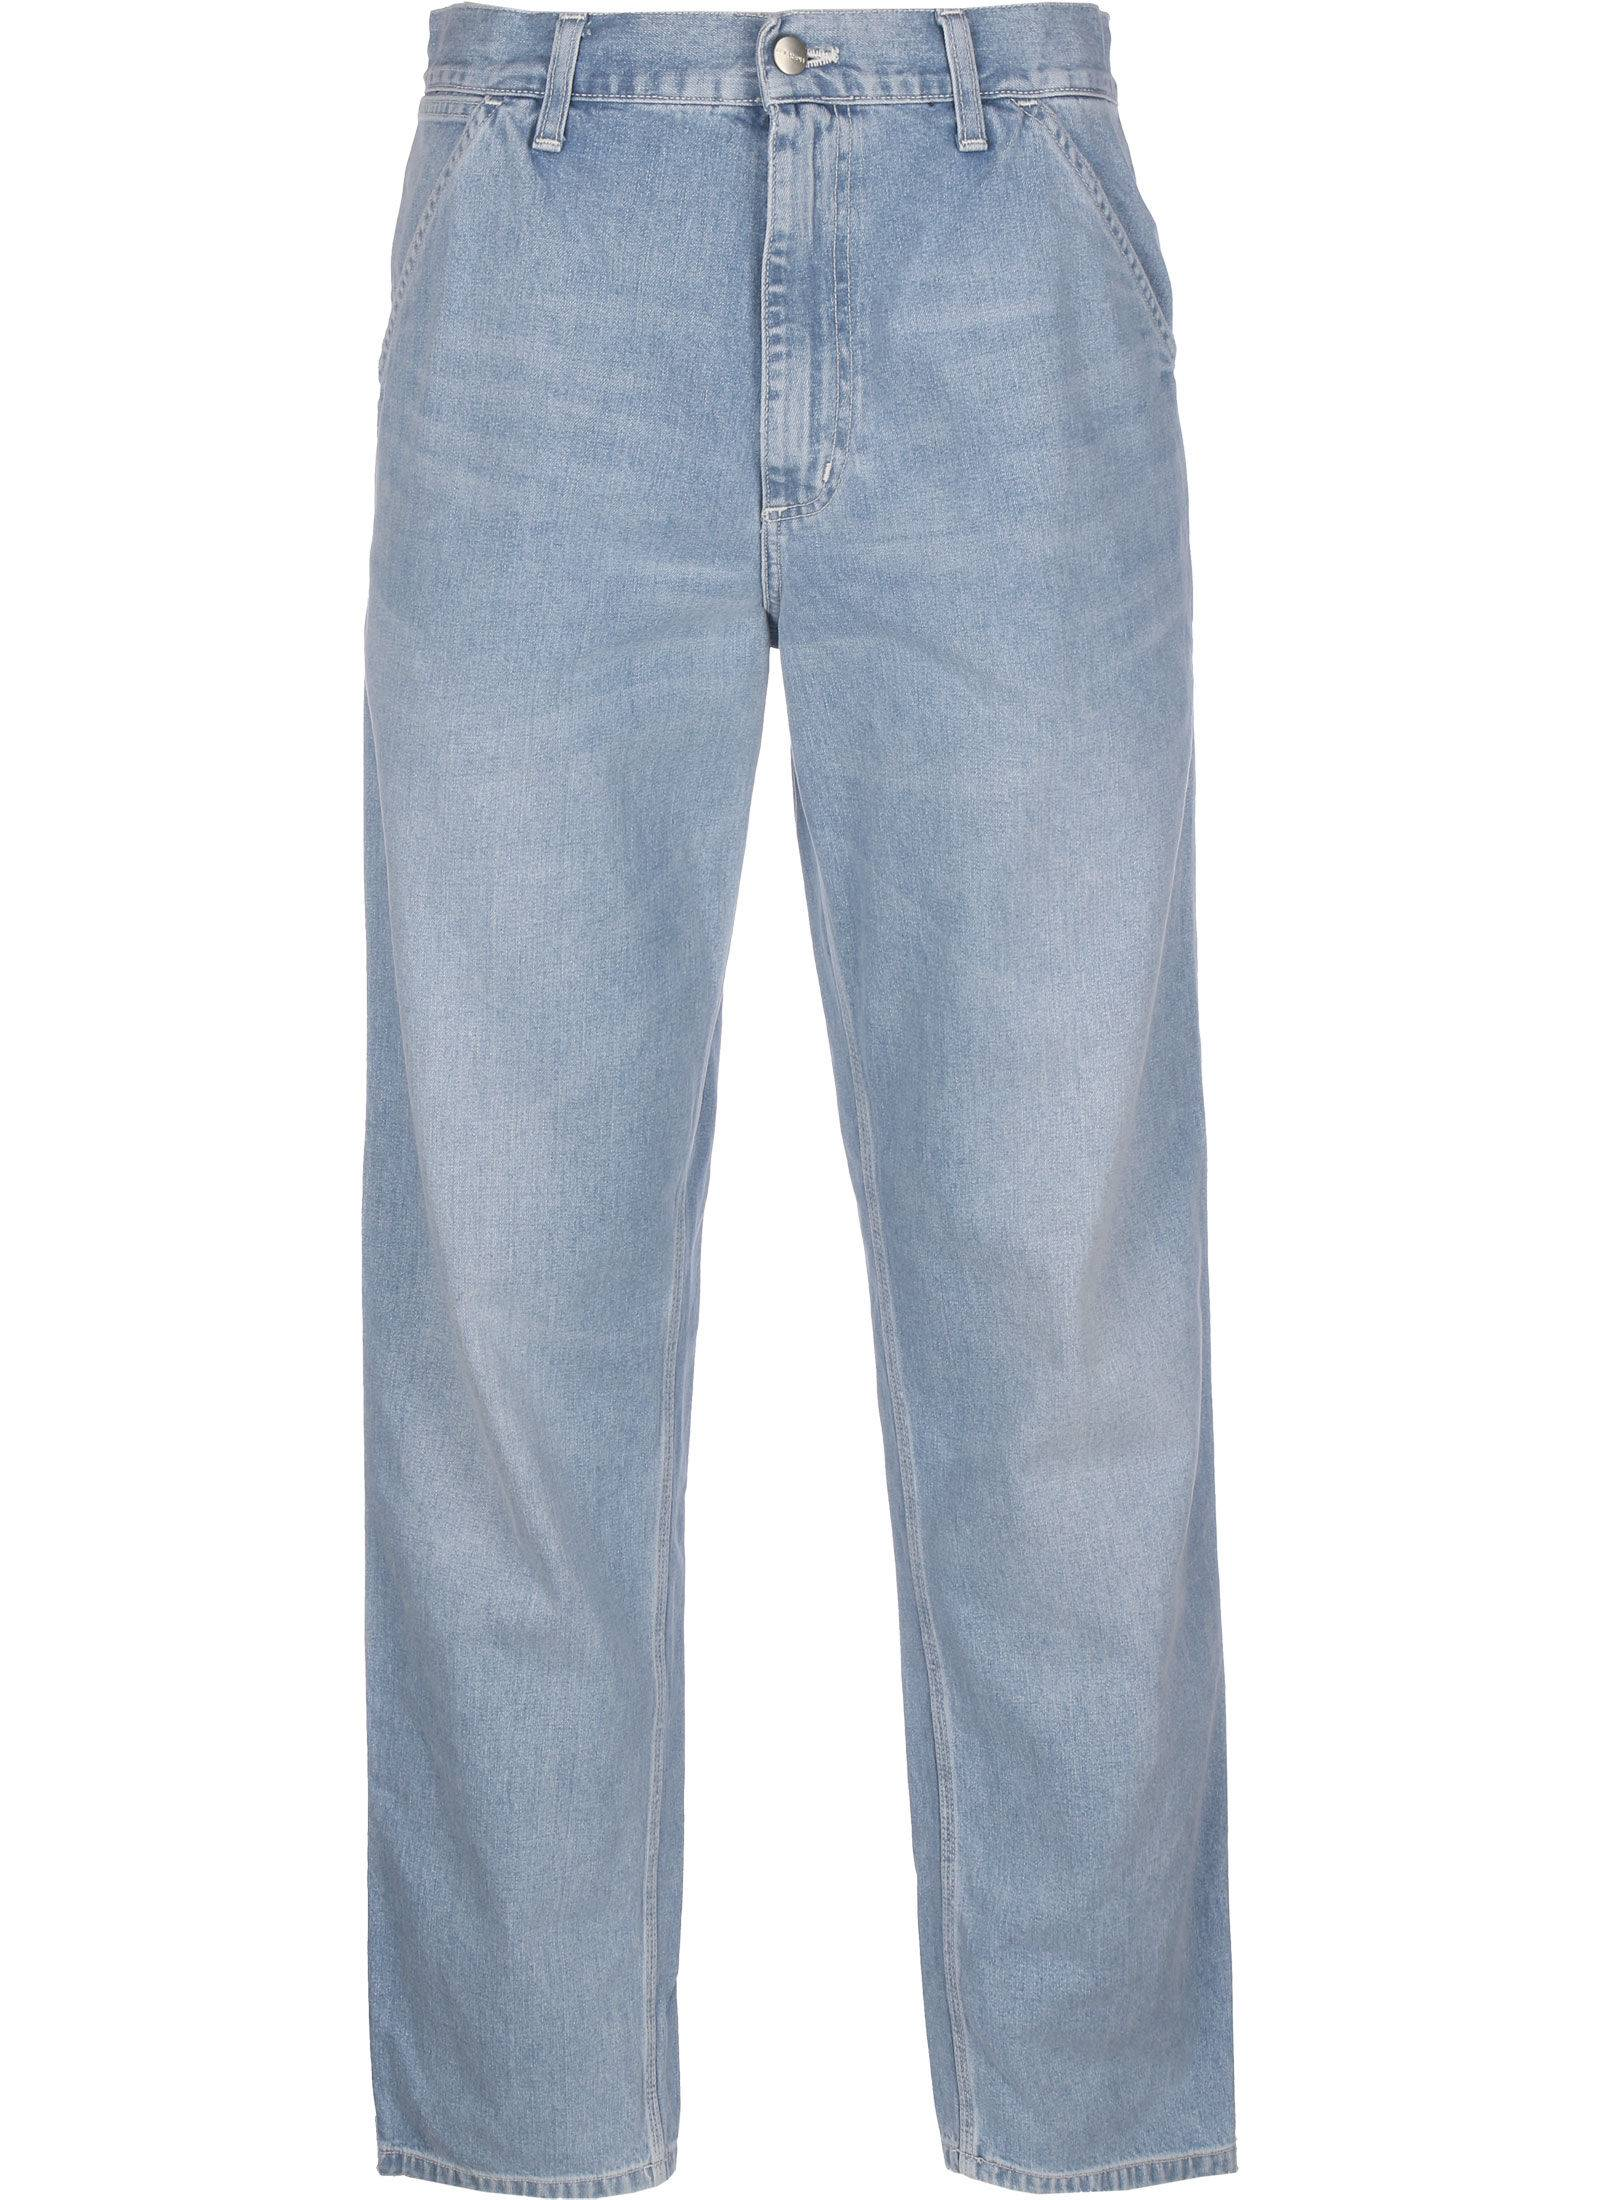 Carhartt WIP Simple, taille 34/34, homme, bleu